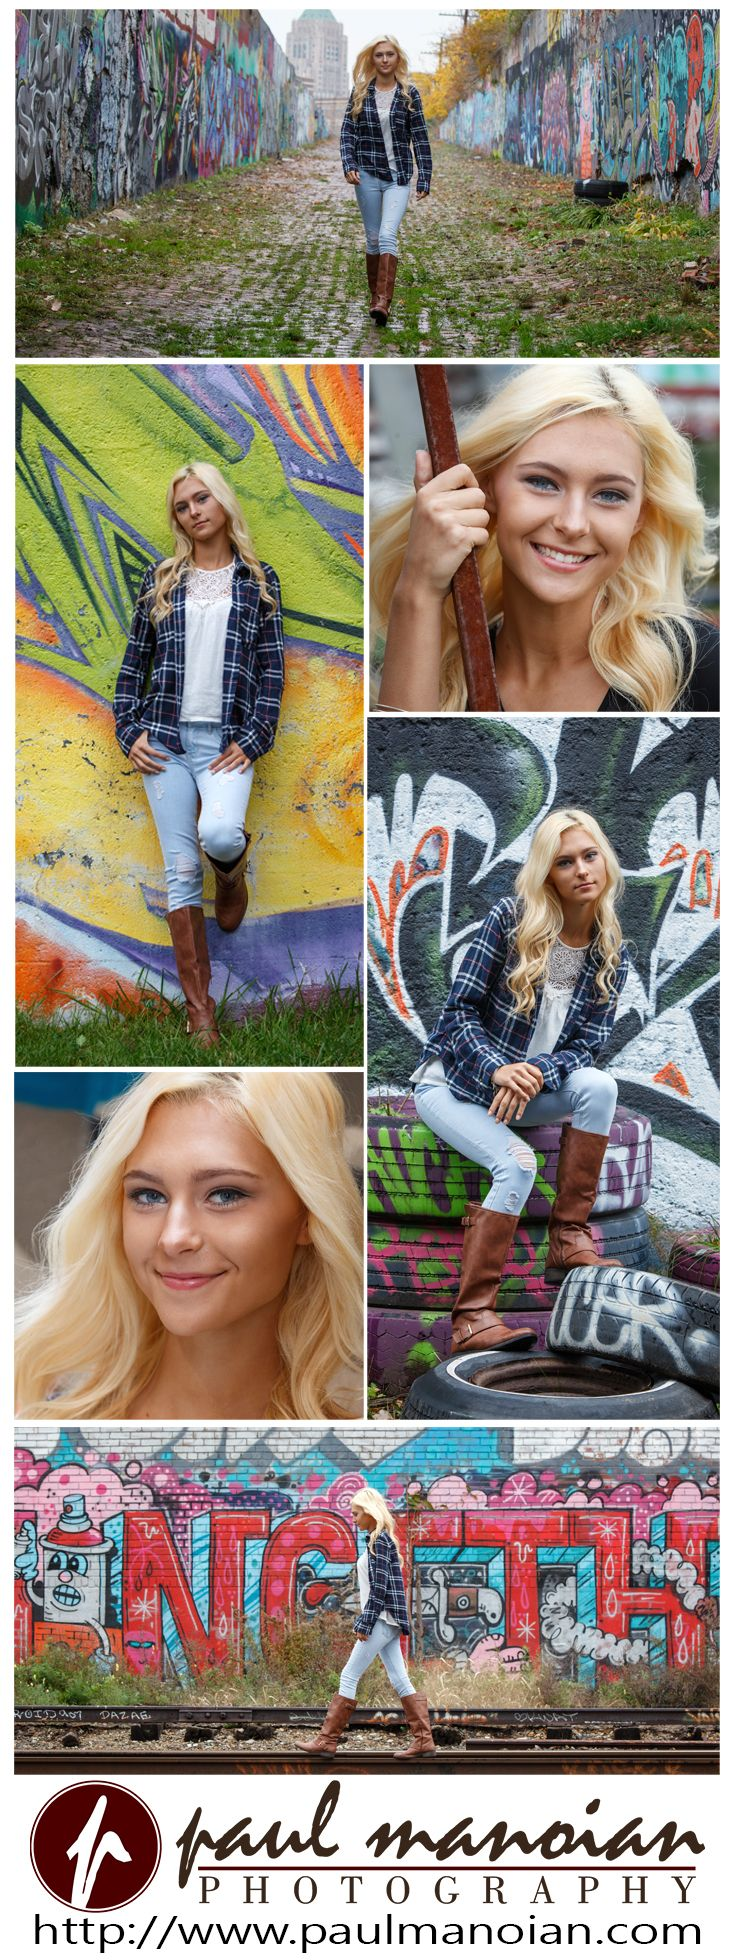 Beautiful senior pictures pose ideas for girls with graffiti - Best Graffiti Senior Portraits - Detroit Photographers